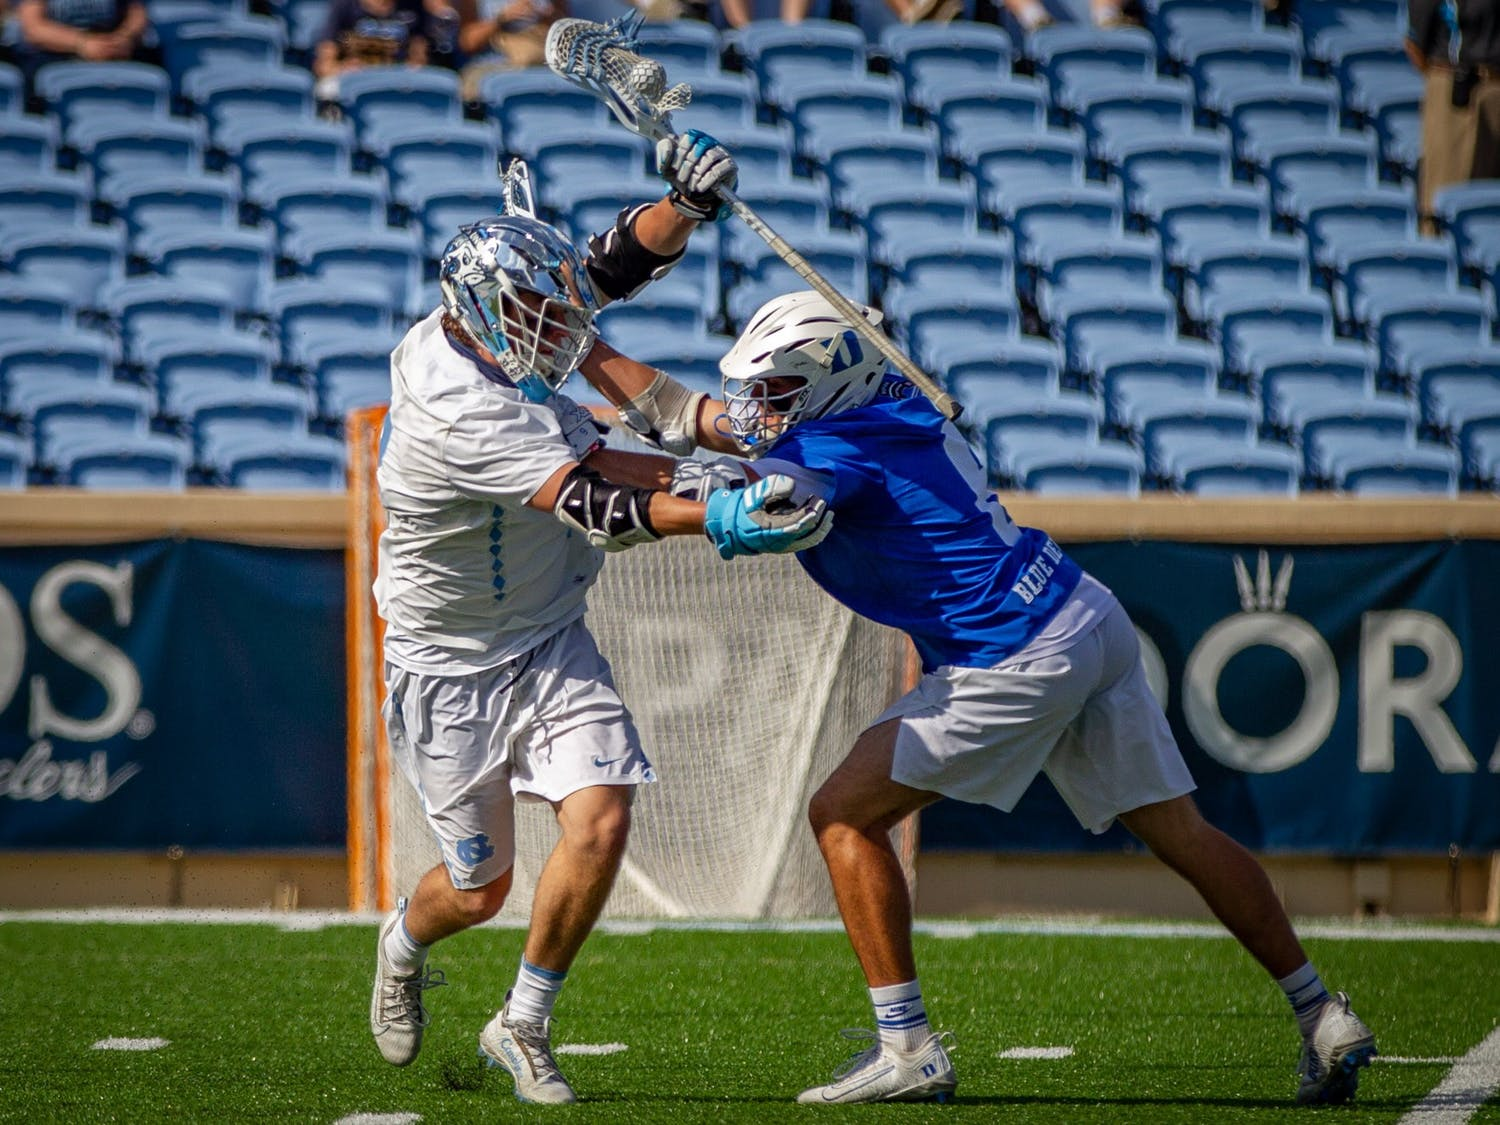 UNC senior midfielder William Perry (3) attempts to keep possession from Duke sophomore midfielder Jake Caputo (6) during the Tar Heels' 15-12 victory against Duke on Sunday, May 2. With the victory, UNC and Duke share the 2021 ACC regular season title.